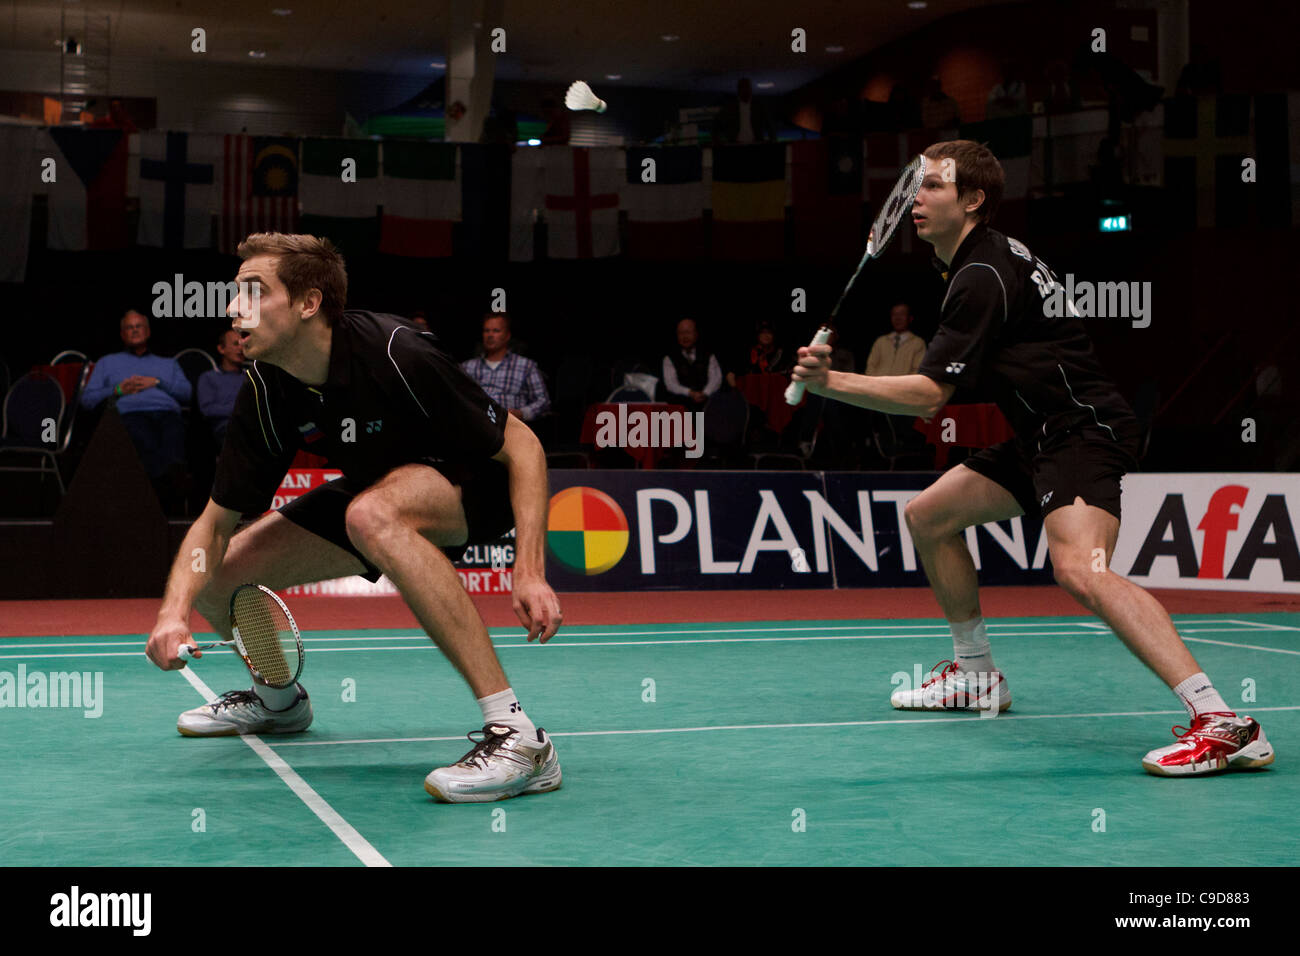 Badminton players Vladimir Ivanov left and Ivan Sozonov right